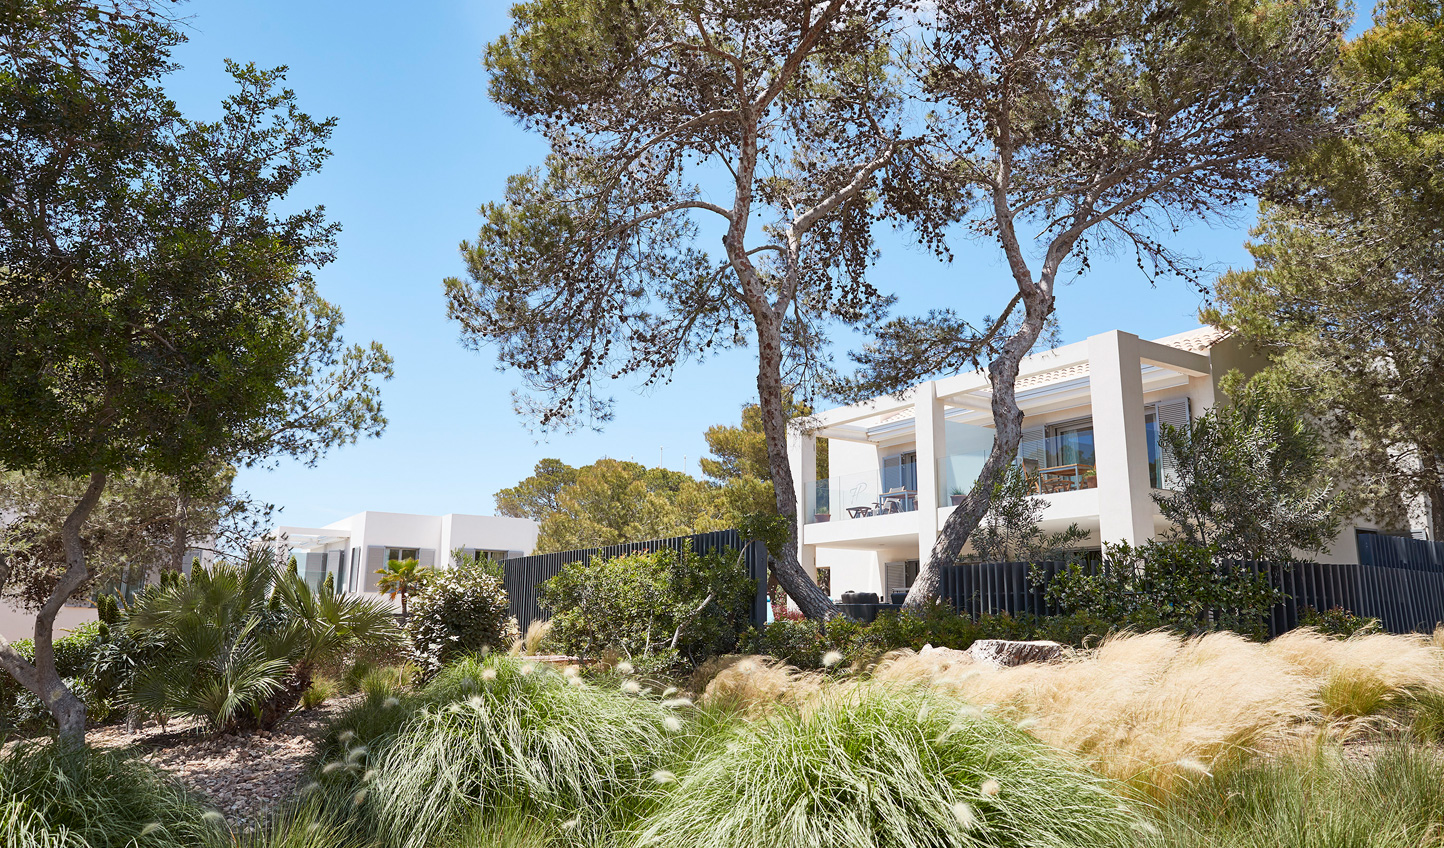 Dotted amid fragrant gardens, 7Pines much resembles a traditional Ibizan village